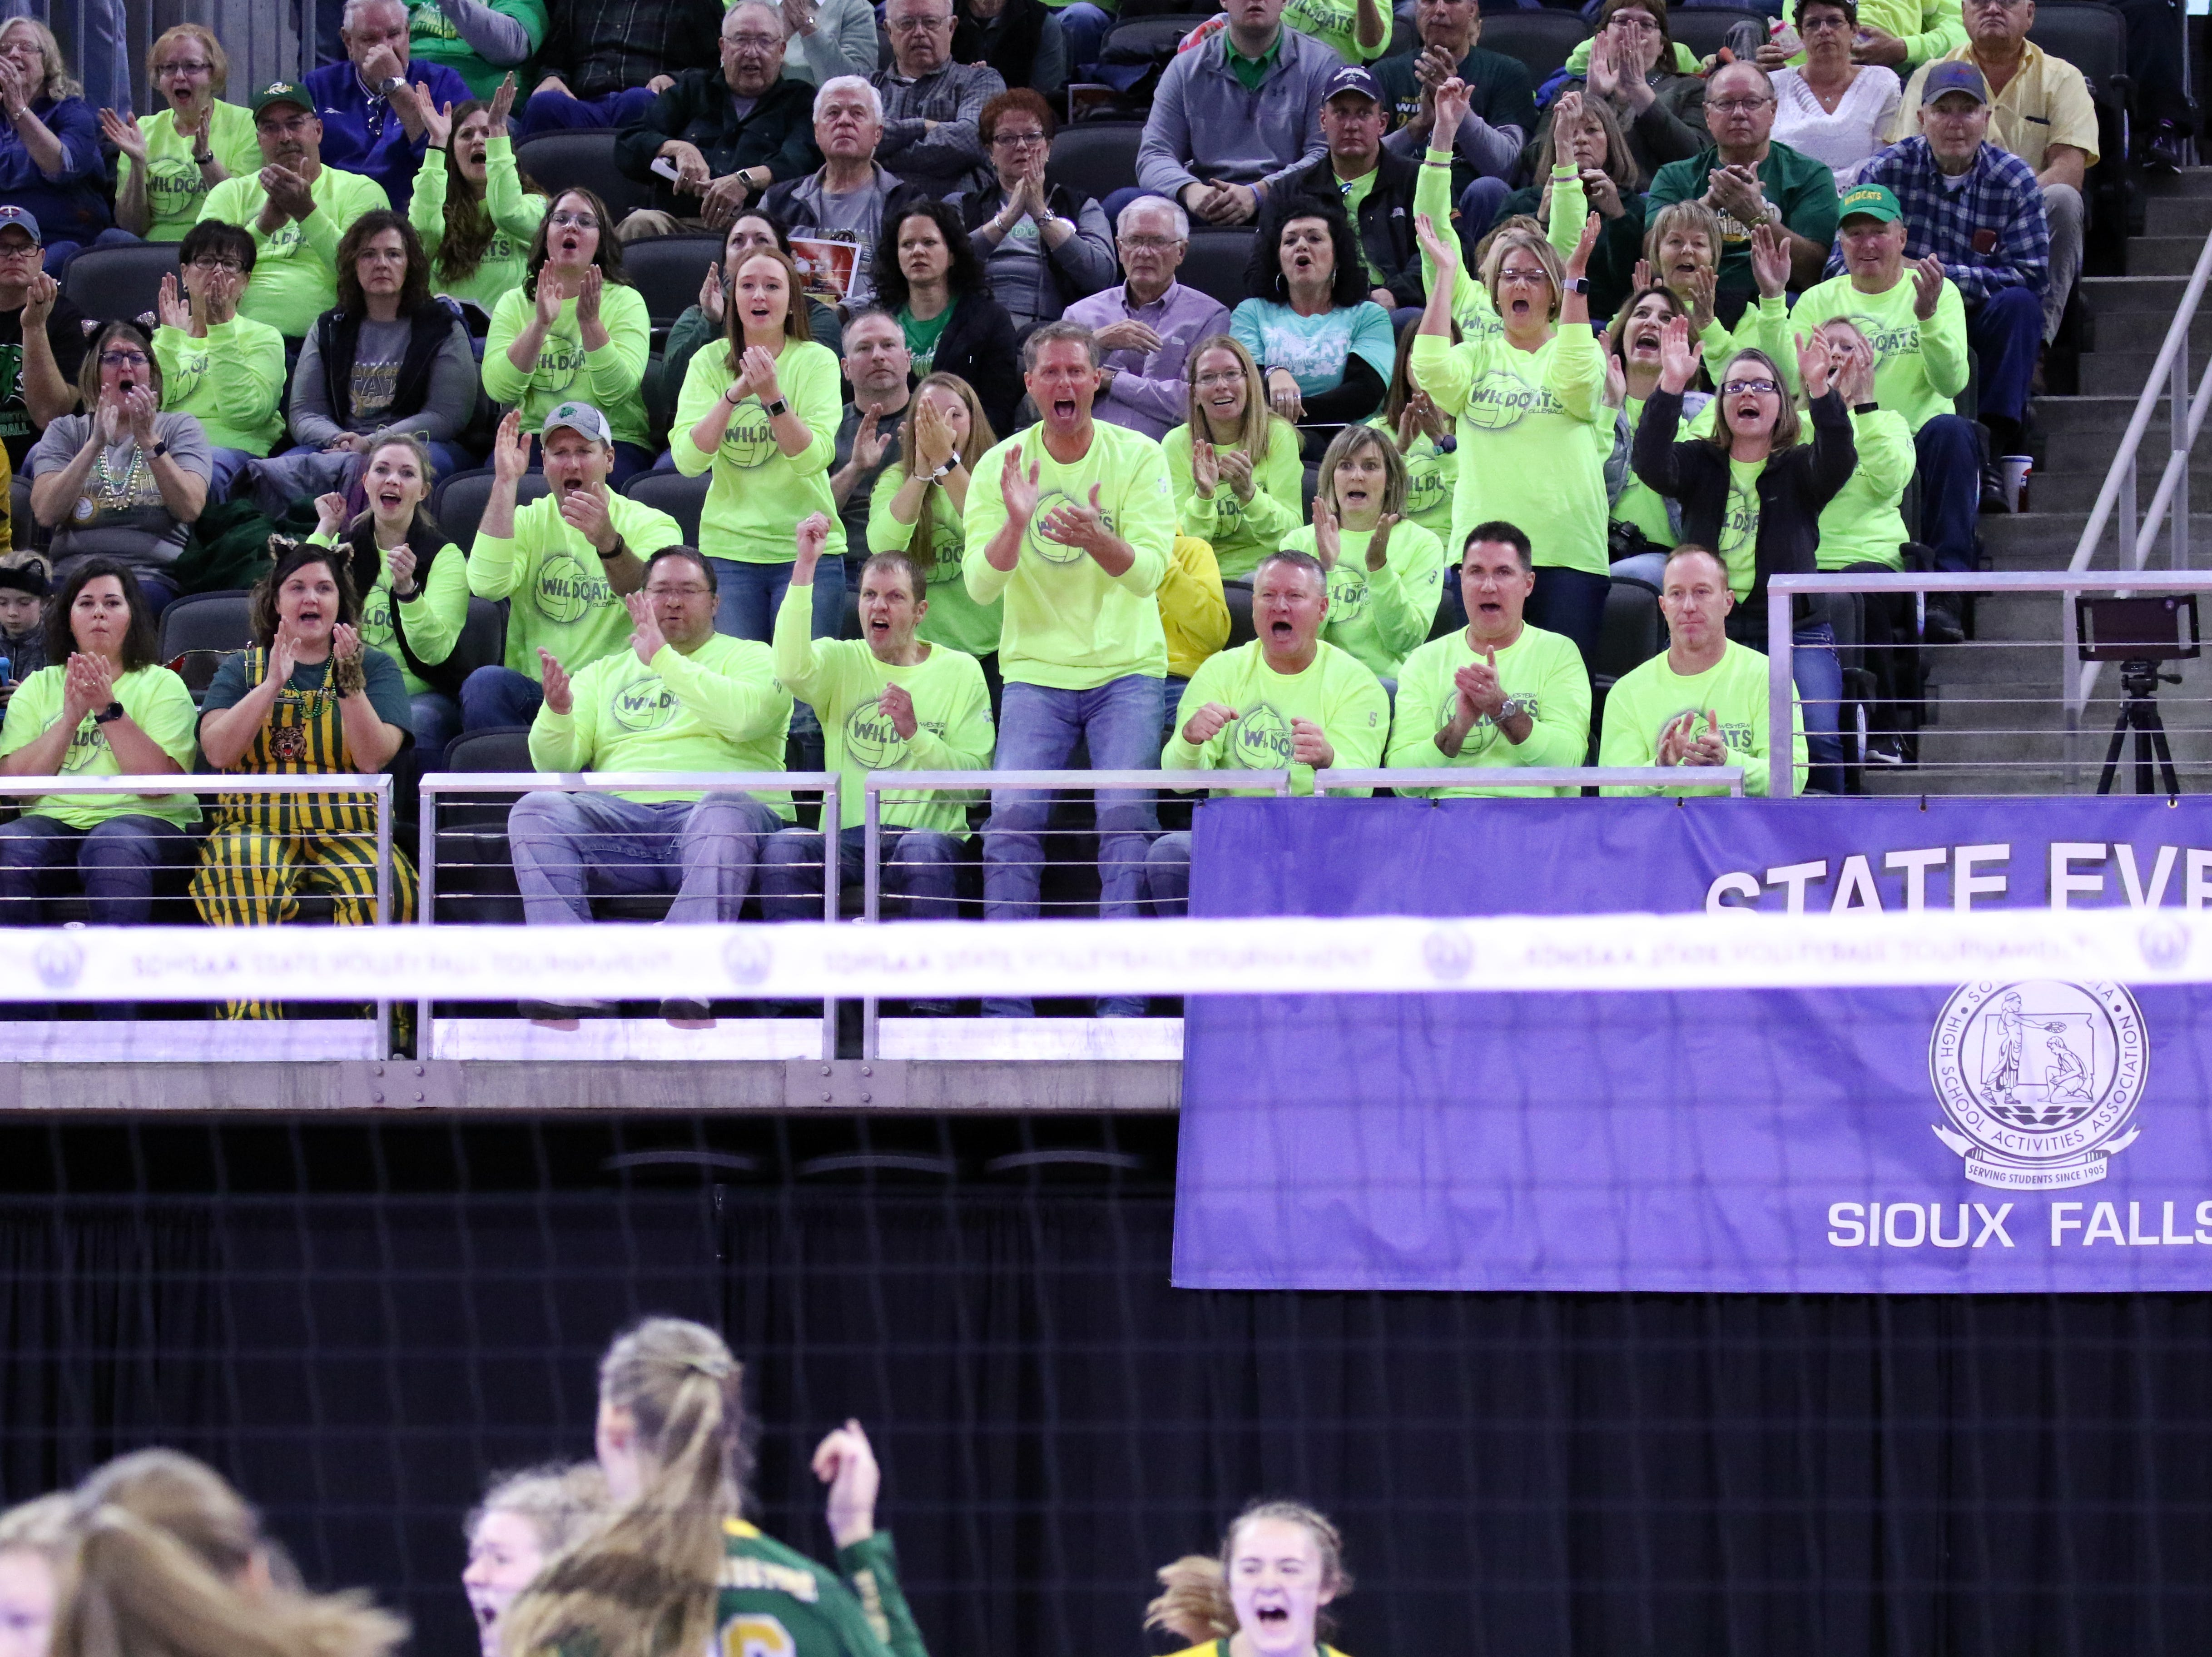 Fans from Northwestern cheer after a point during Thursday afternoon's match against Kimball-White Lake in Sioux Falls.